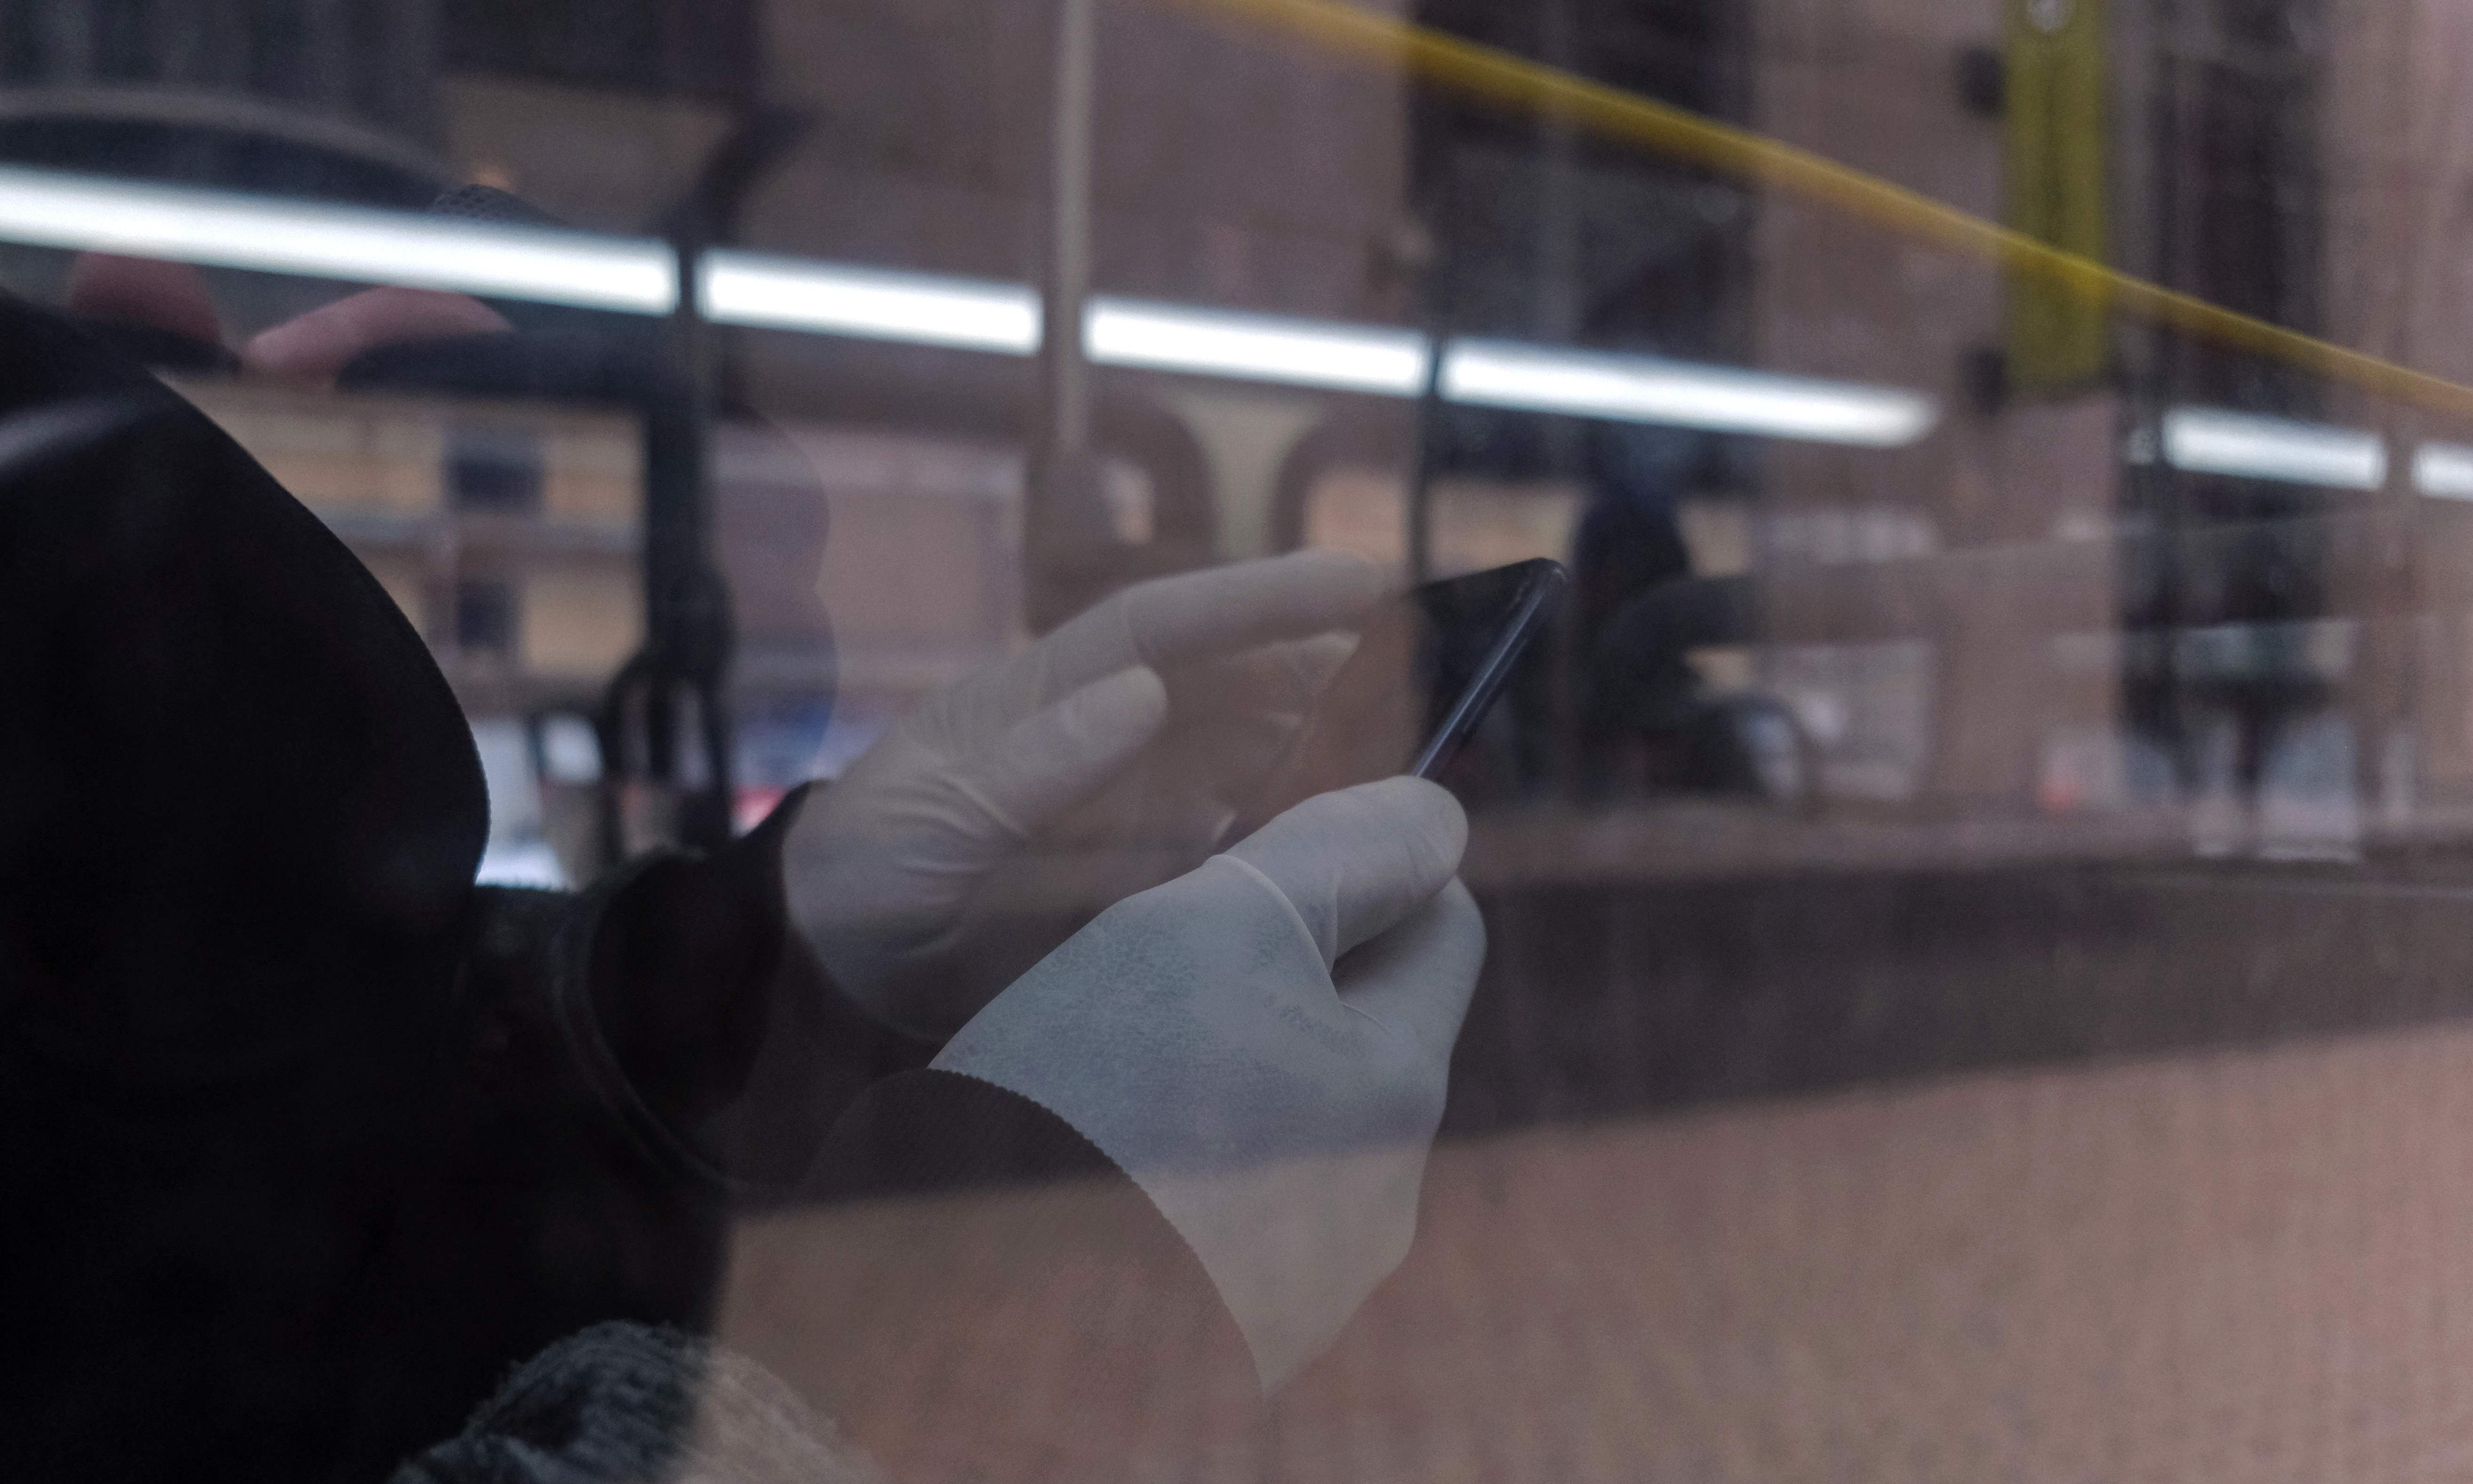 Detroit bus driver dies of coronavirus after posting video about passenger coughing